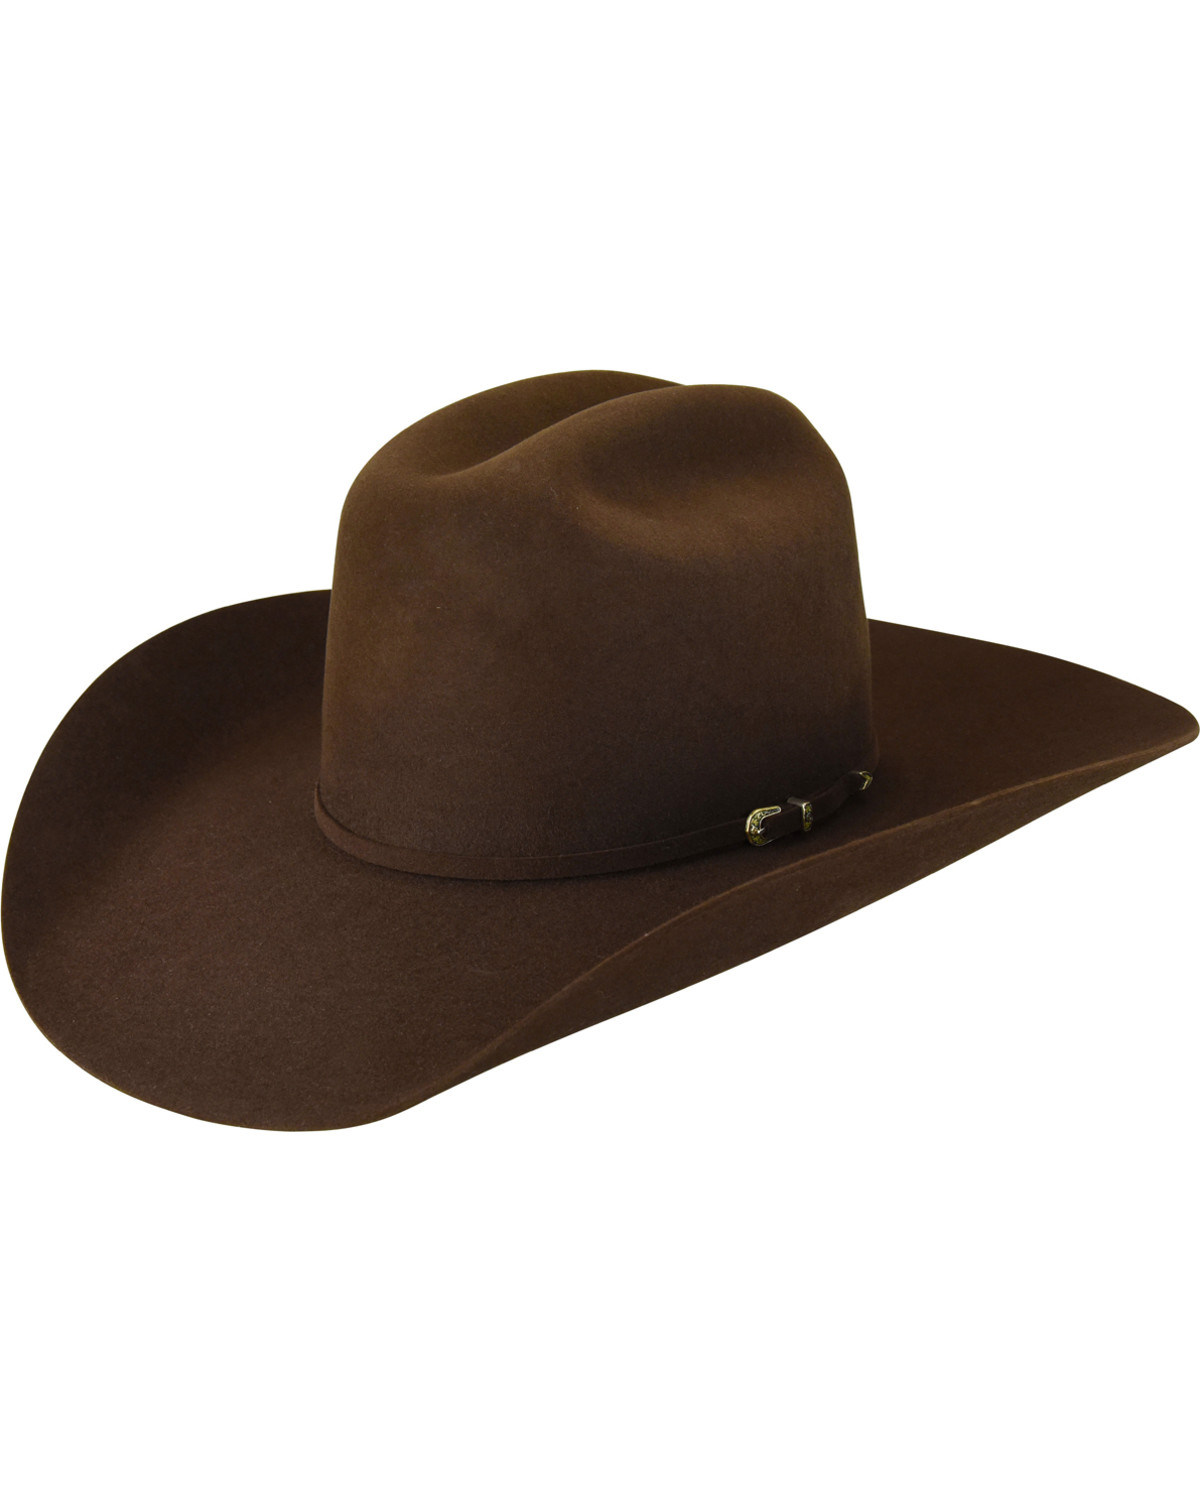 Bailey Men s Brown Pro 5X Wool Felt Cowboy Hat  011768d31f7